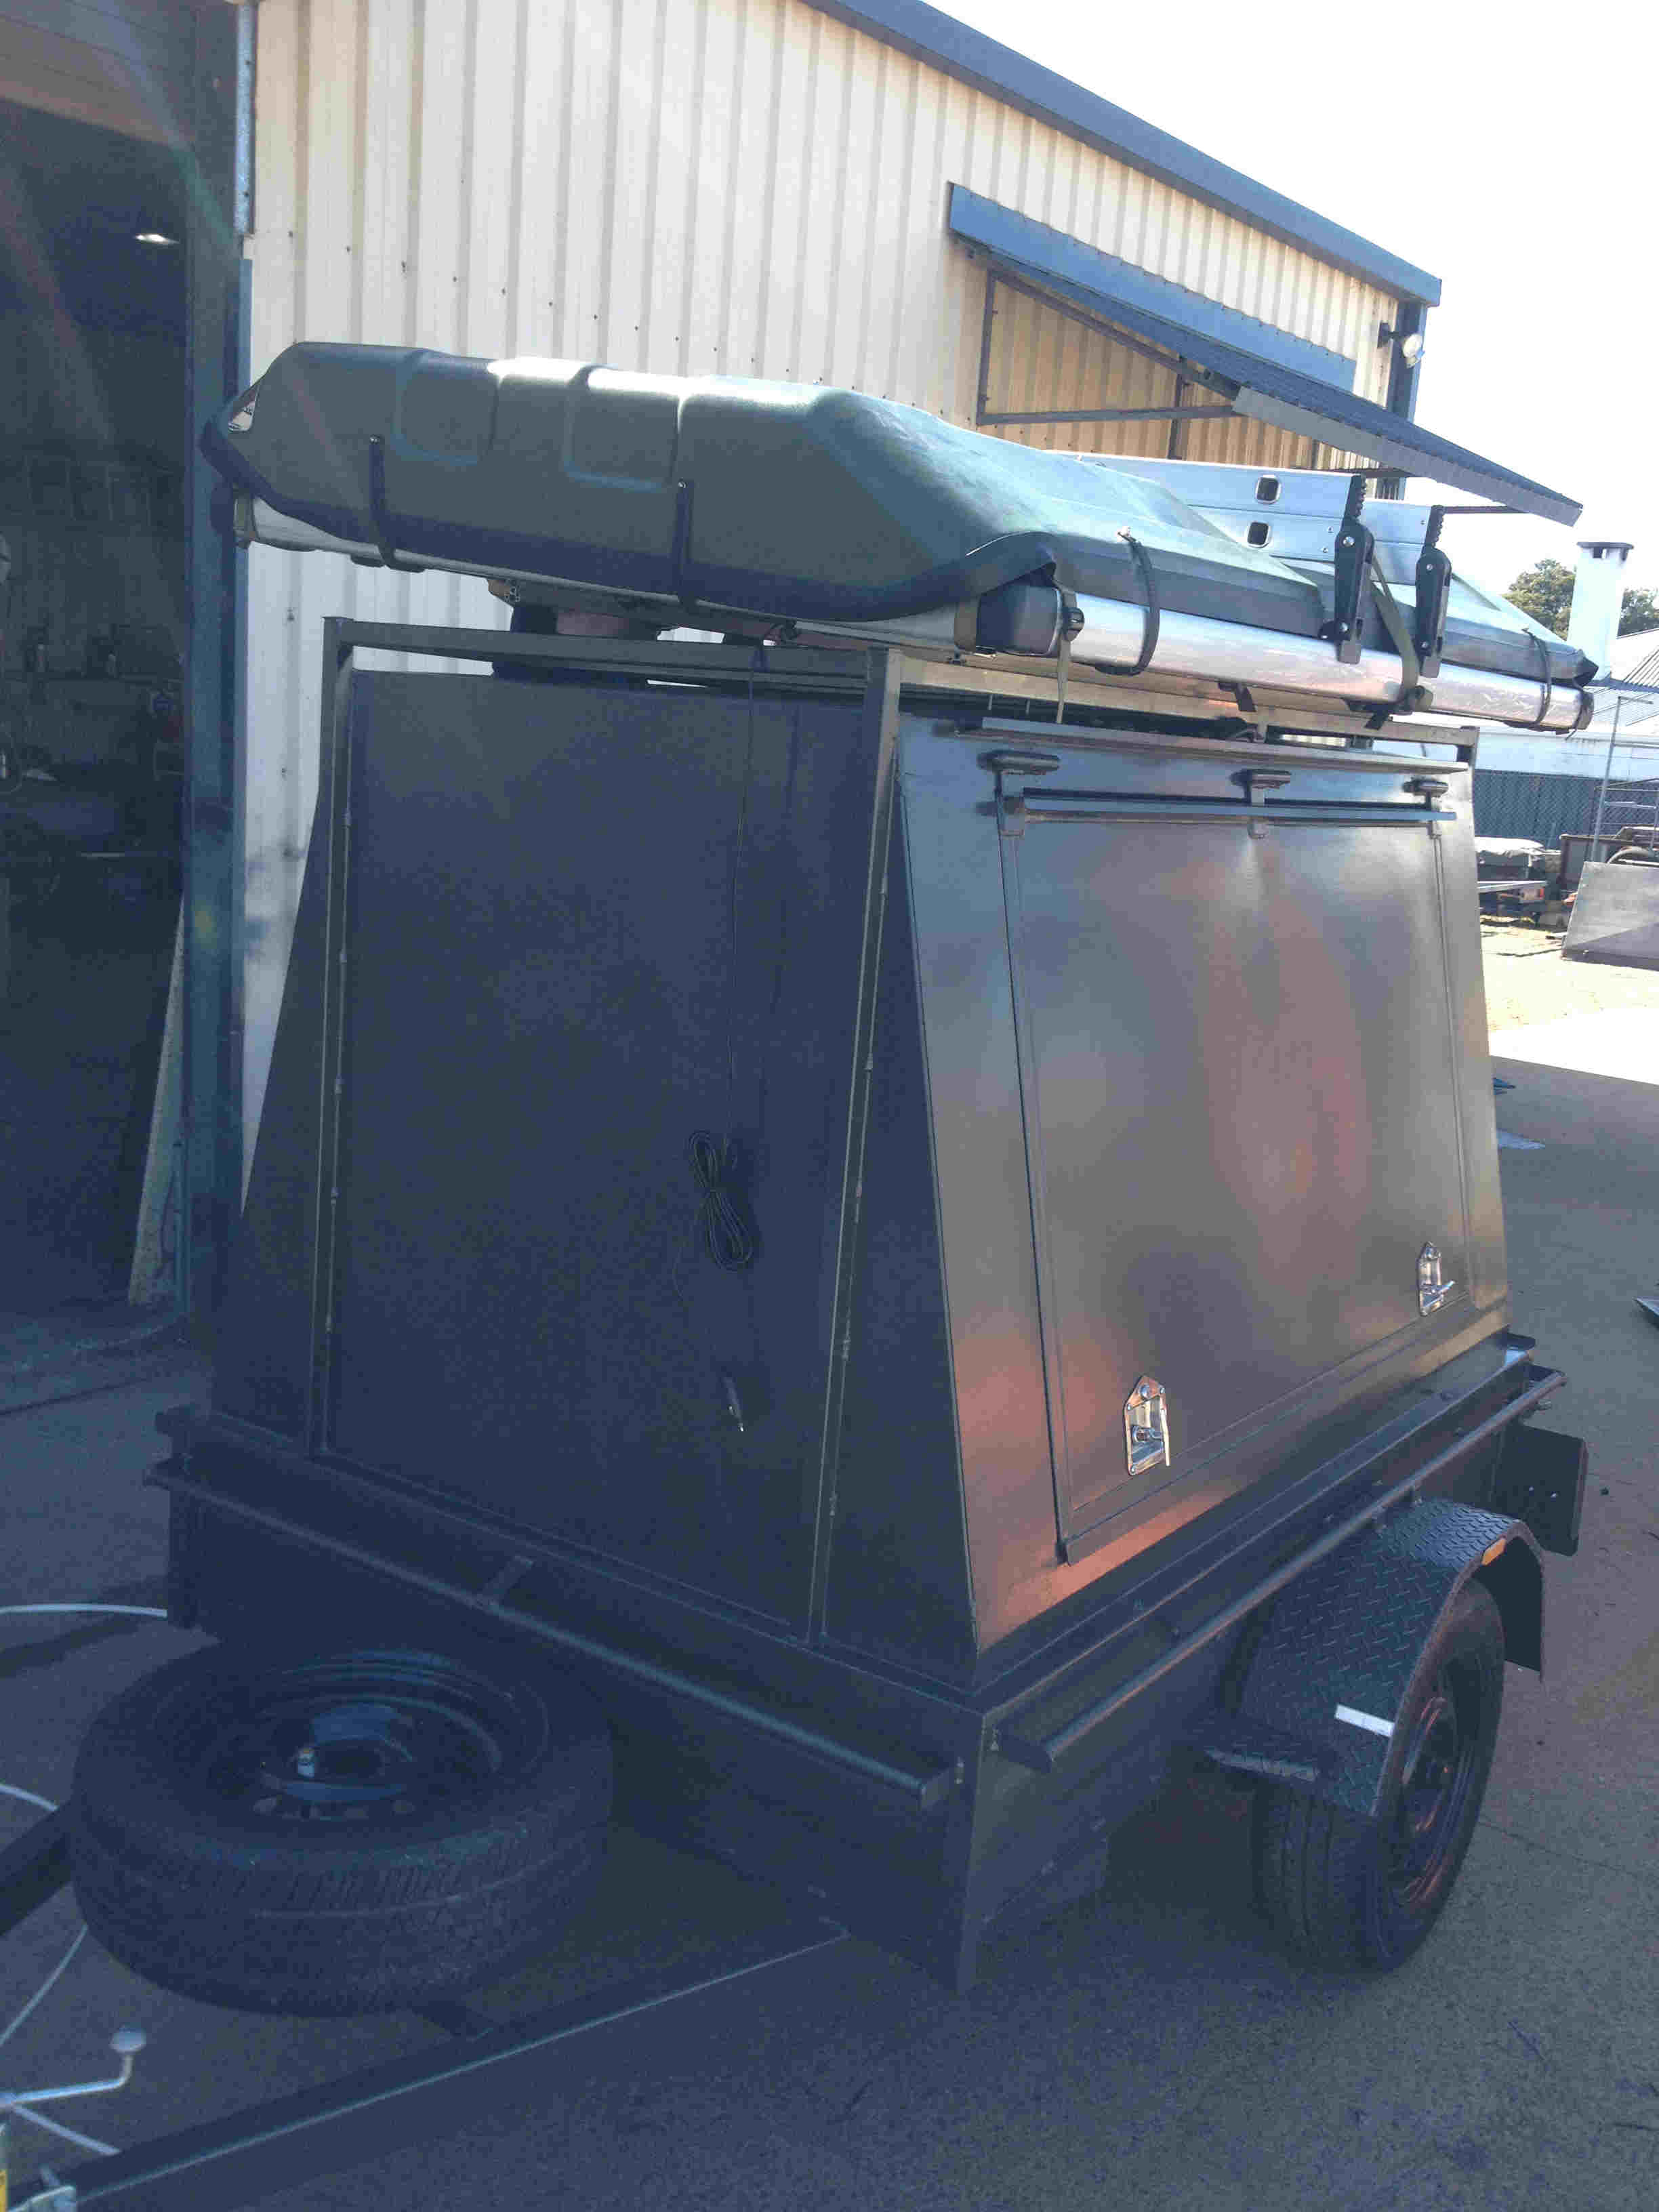 camper top trailer